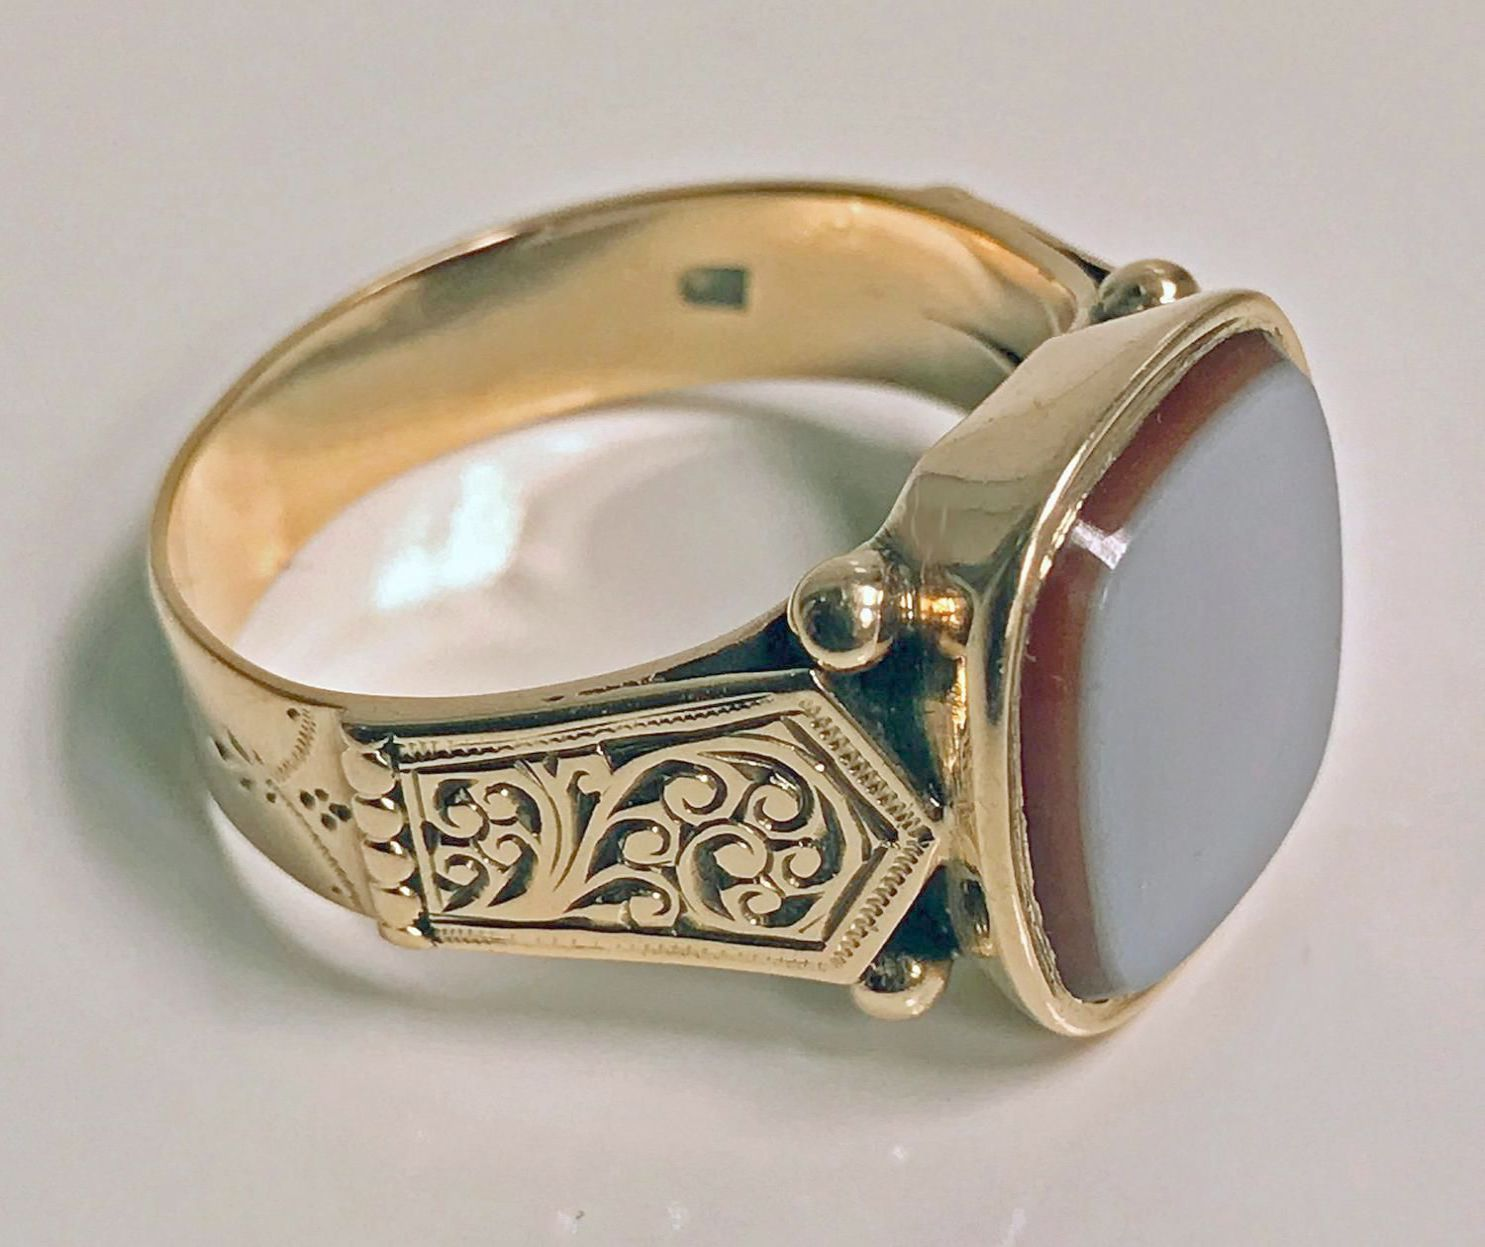 36++ Jewelry engraving stores near me information